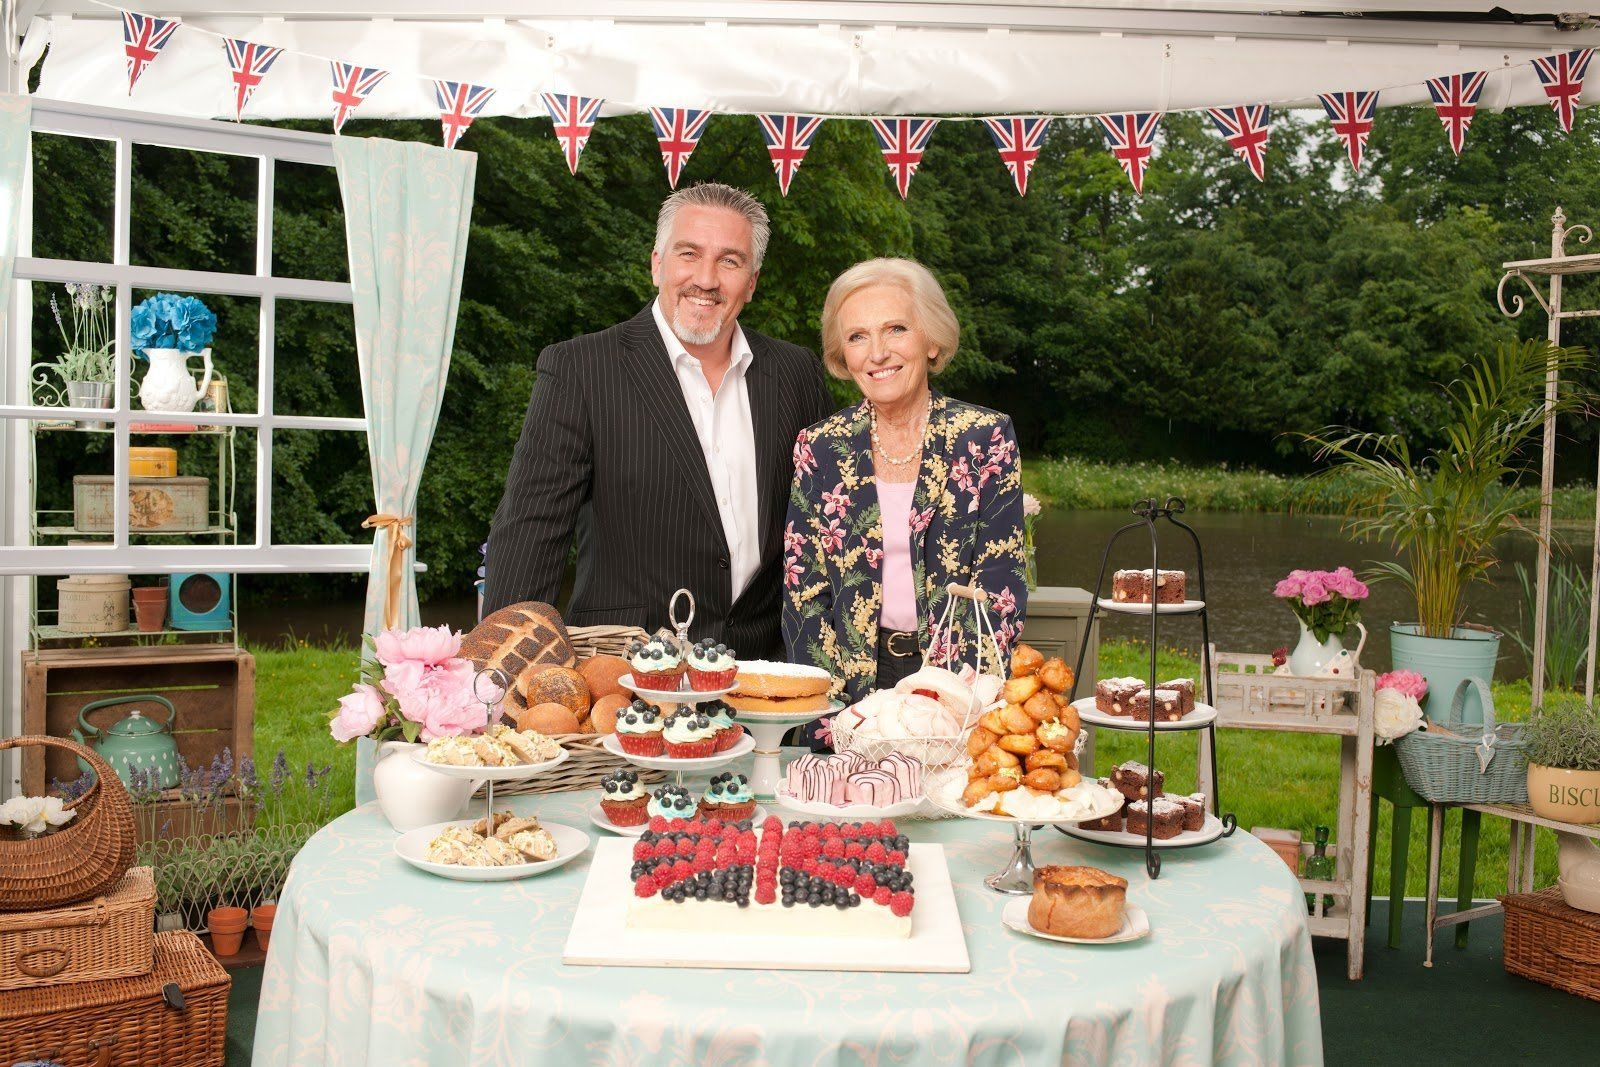 Cancel Your Bank Holiday Plans, Netflix Is Now Streaming Old Episodes Of 'Great British Bake